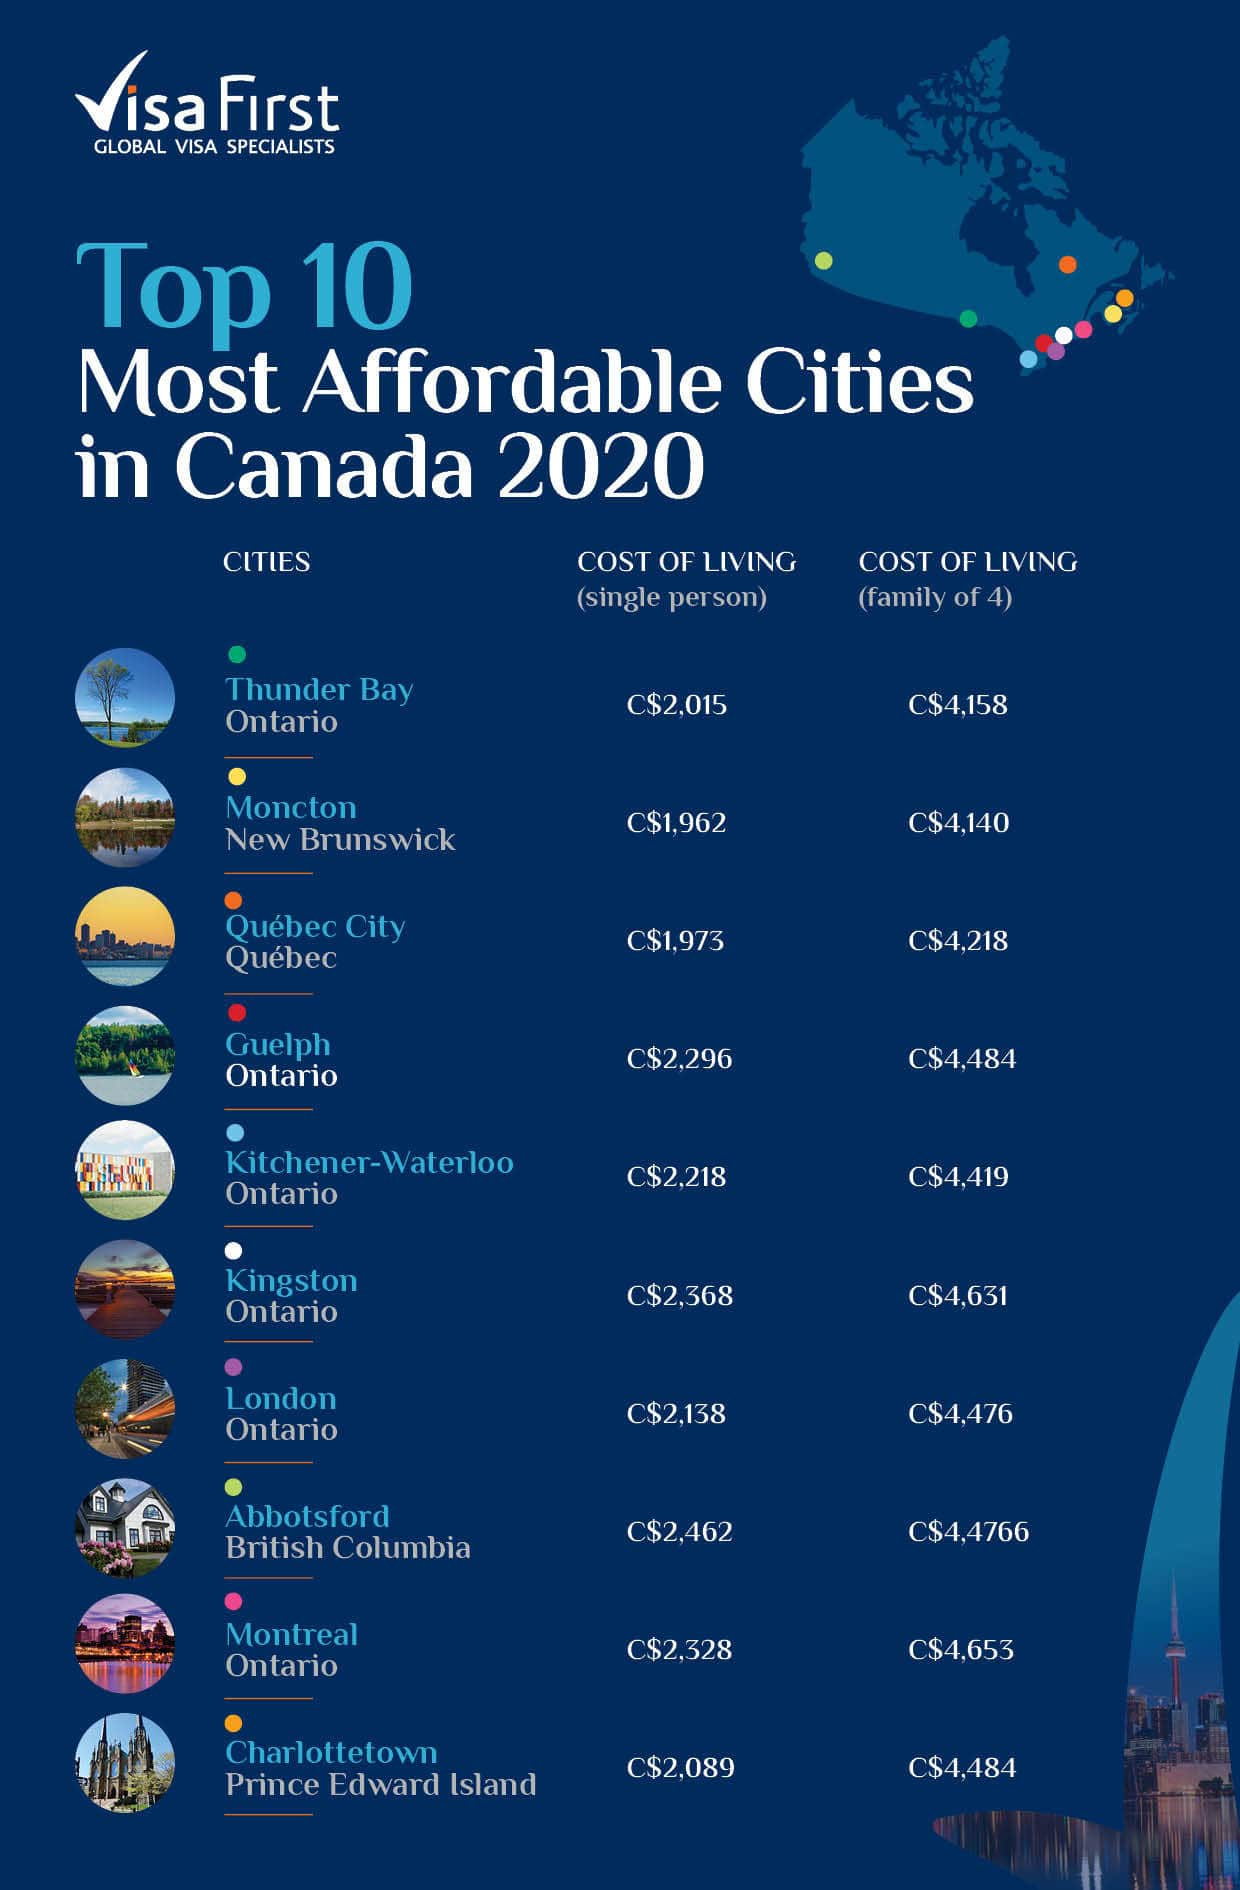 Most affordable cities in Canada 2020